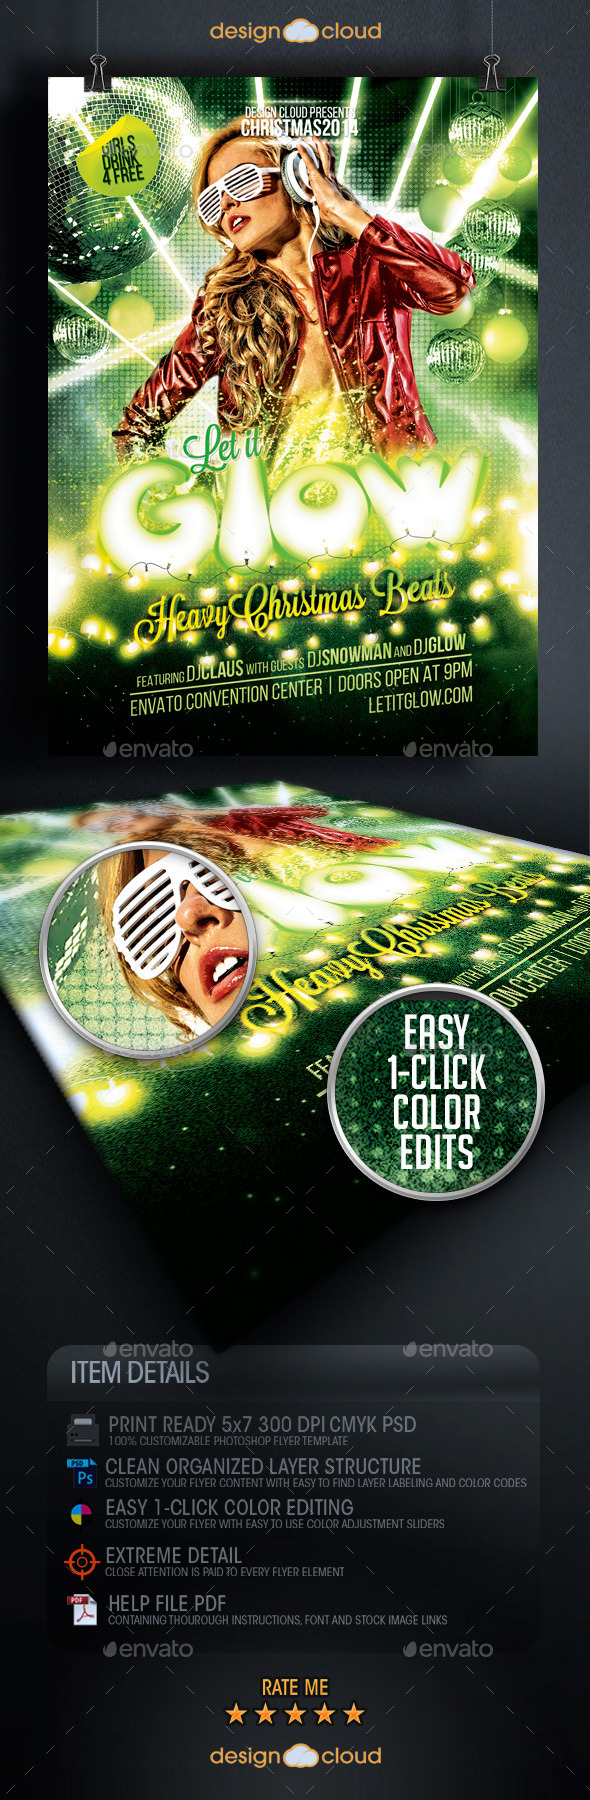 GraphicRiver Let it Glow Christmas Event Flyer Template 9707181